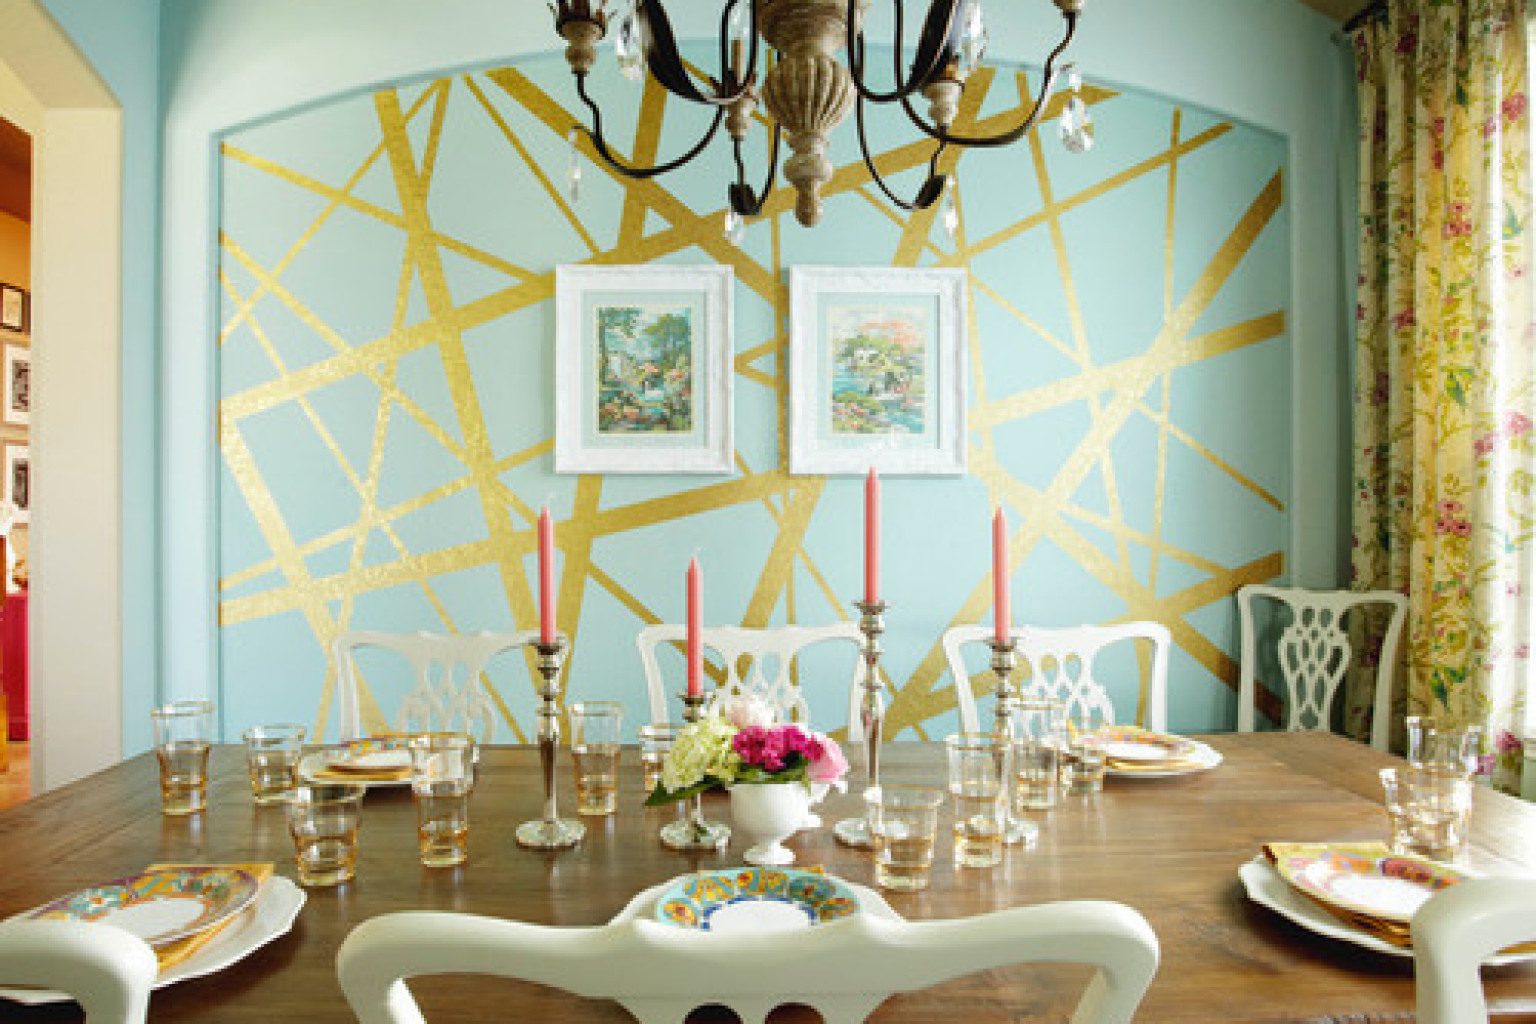 8 incredible interior paint ideas from real homes that turn a wall